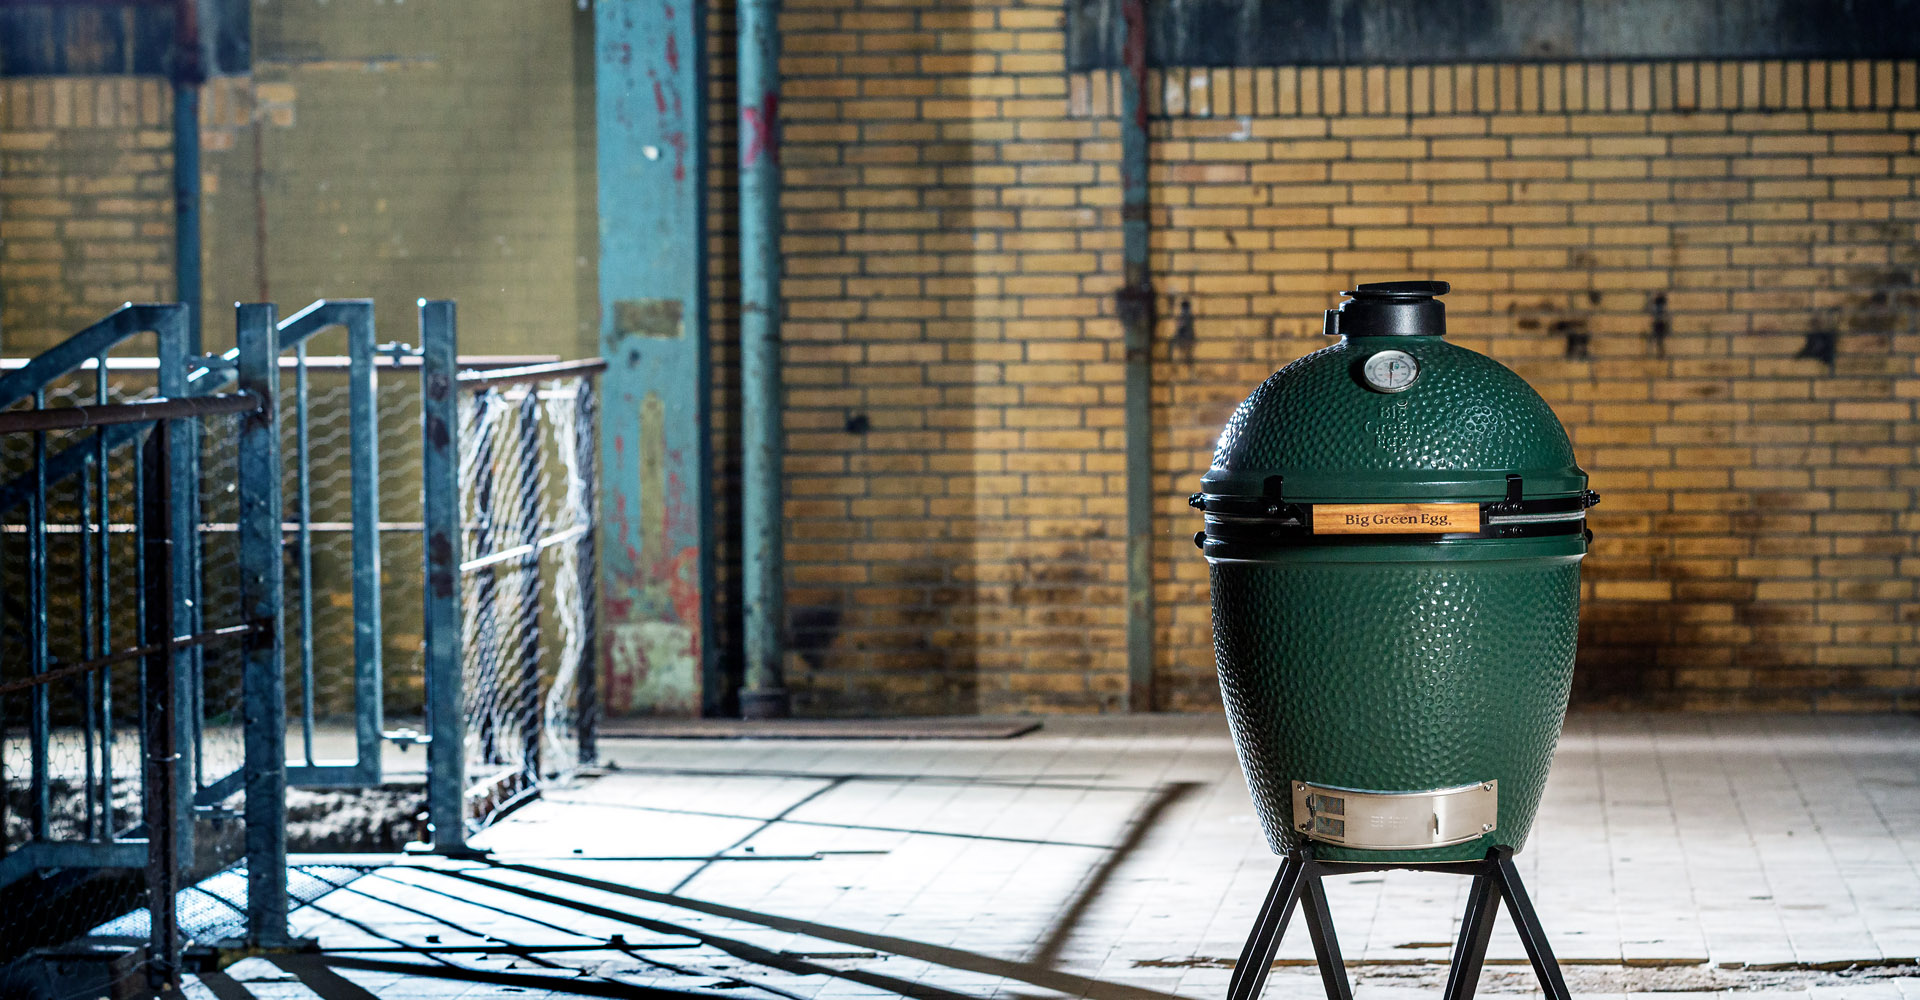 Big Green Egg Professional About